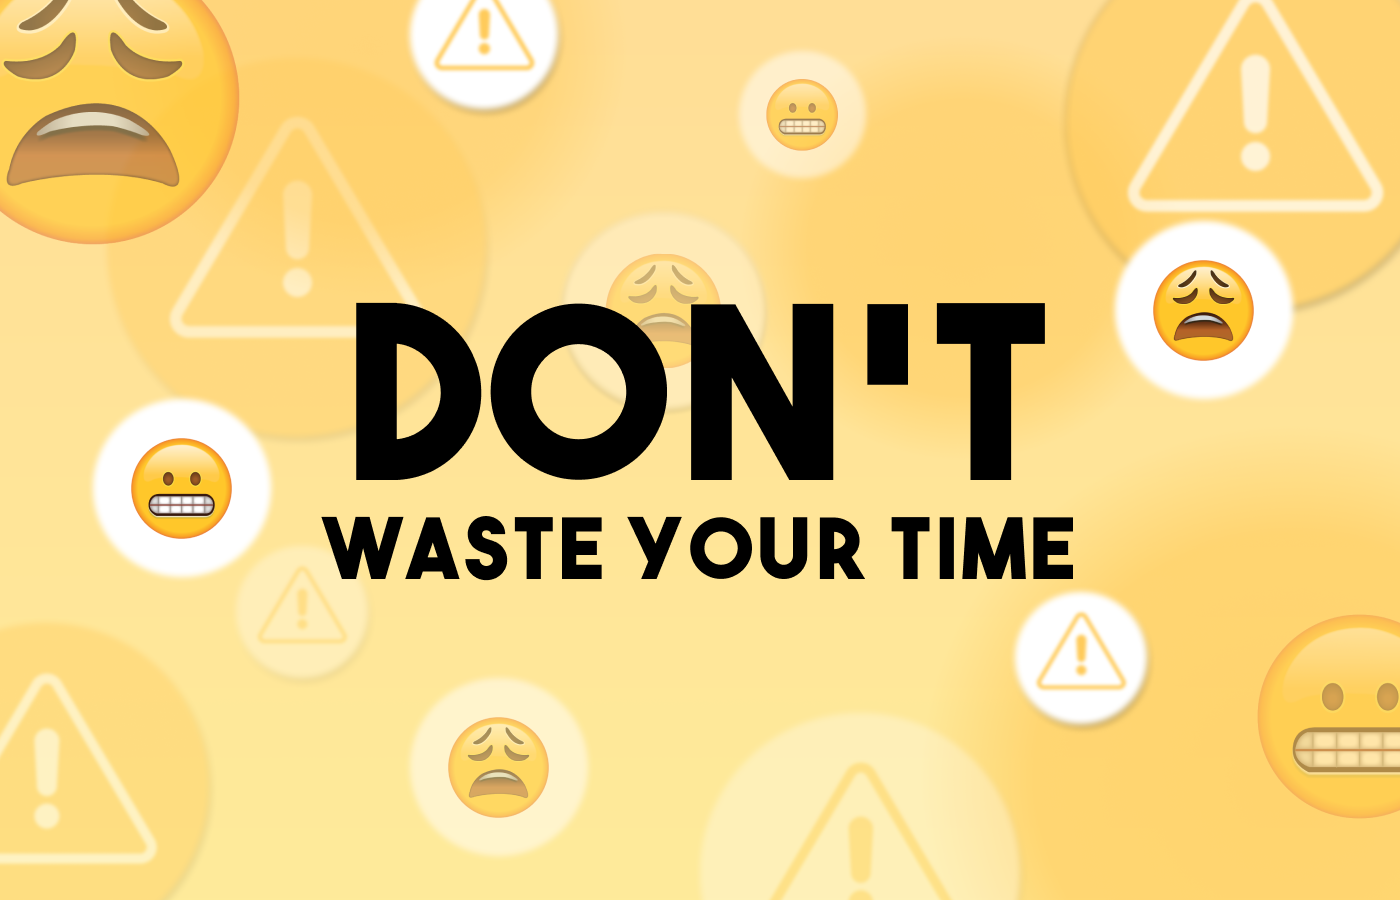 """The phrase """"Don't waste your time"""" with frustrated emoji in the background"""